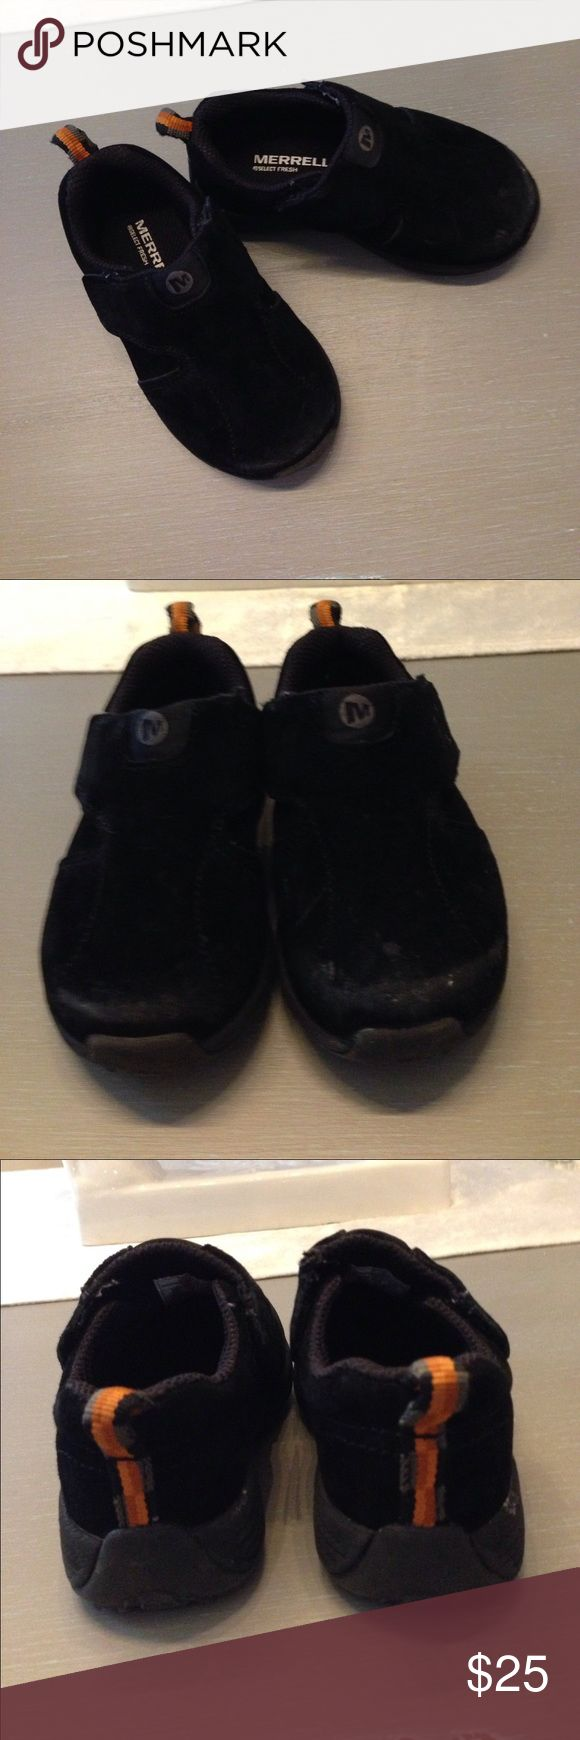 The BEST Merrell toddler suede shoes- 6.5 Fabulous quality Merrell jungle moc sport A/C black suede sneakers for toddler boys. Very high quality, well made shoe in great condition! These have  double Velcro closures so your little one can easily put them on and off himself. Thick, sturdy rubber soles with non slip tread. Very minor scuffing on tips that (see photo). My son only wore these only a few times so they are almost good as new. Size 6.5 Merrell Shoes